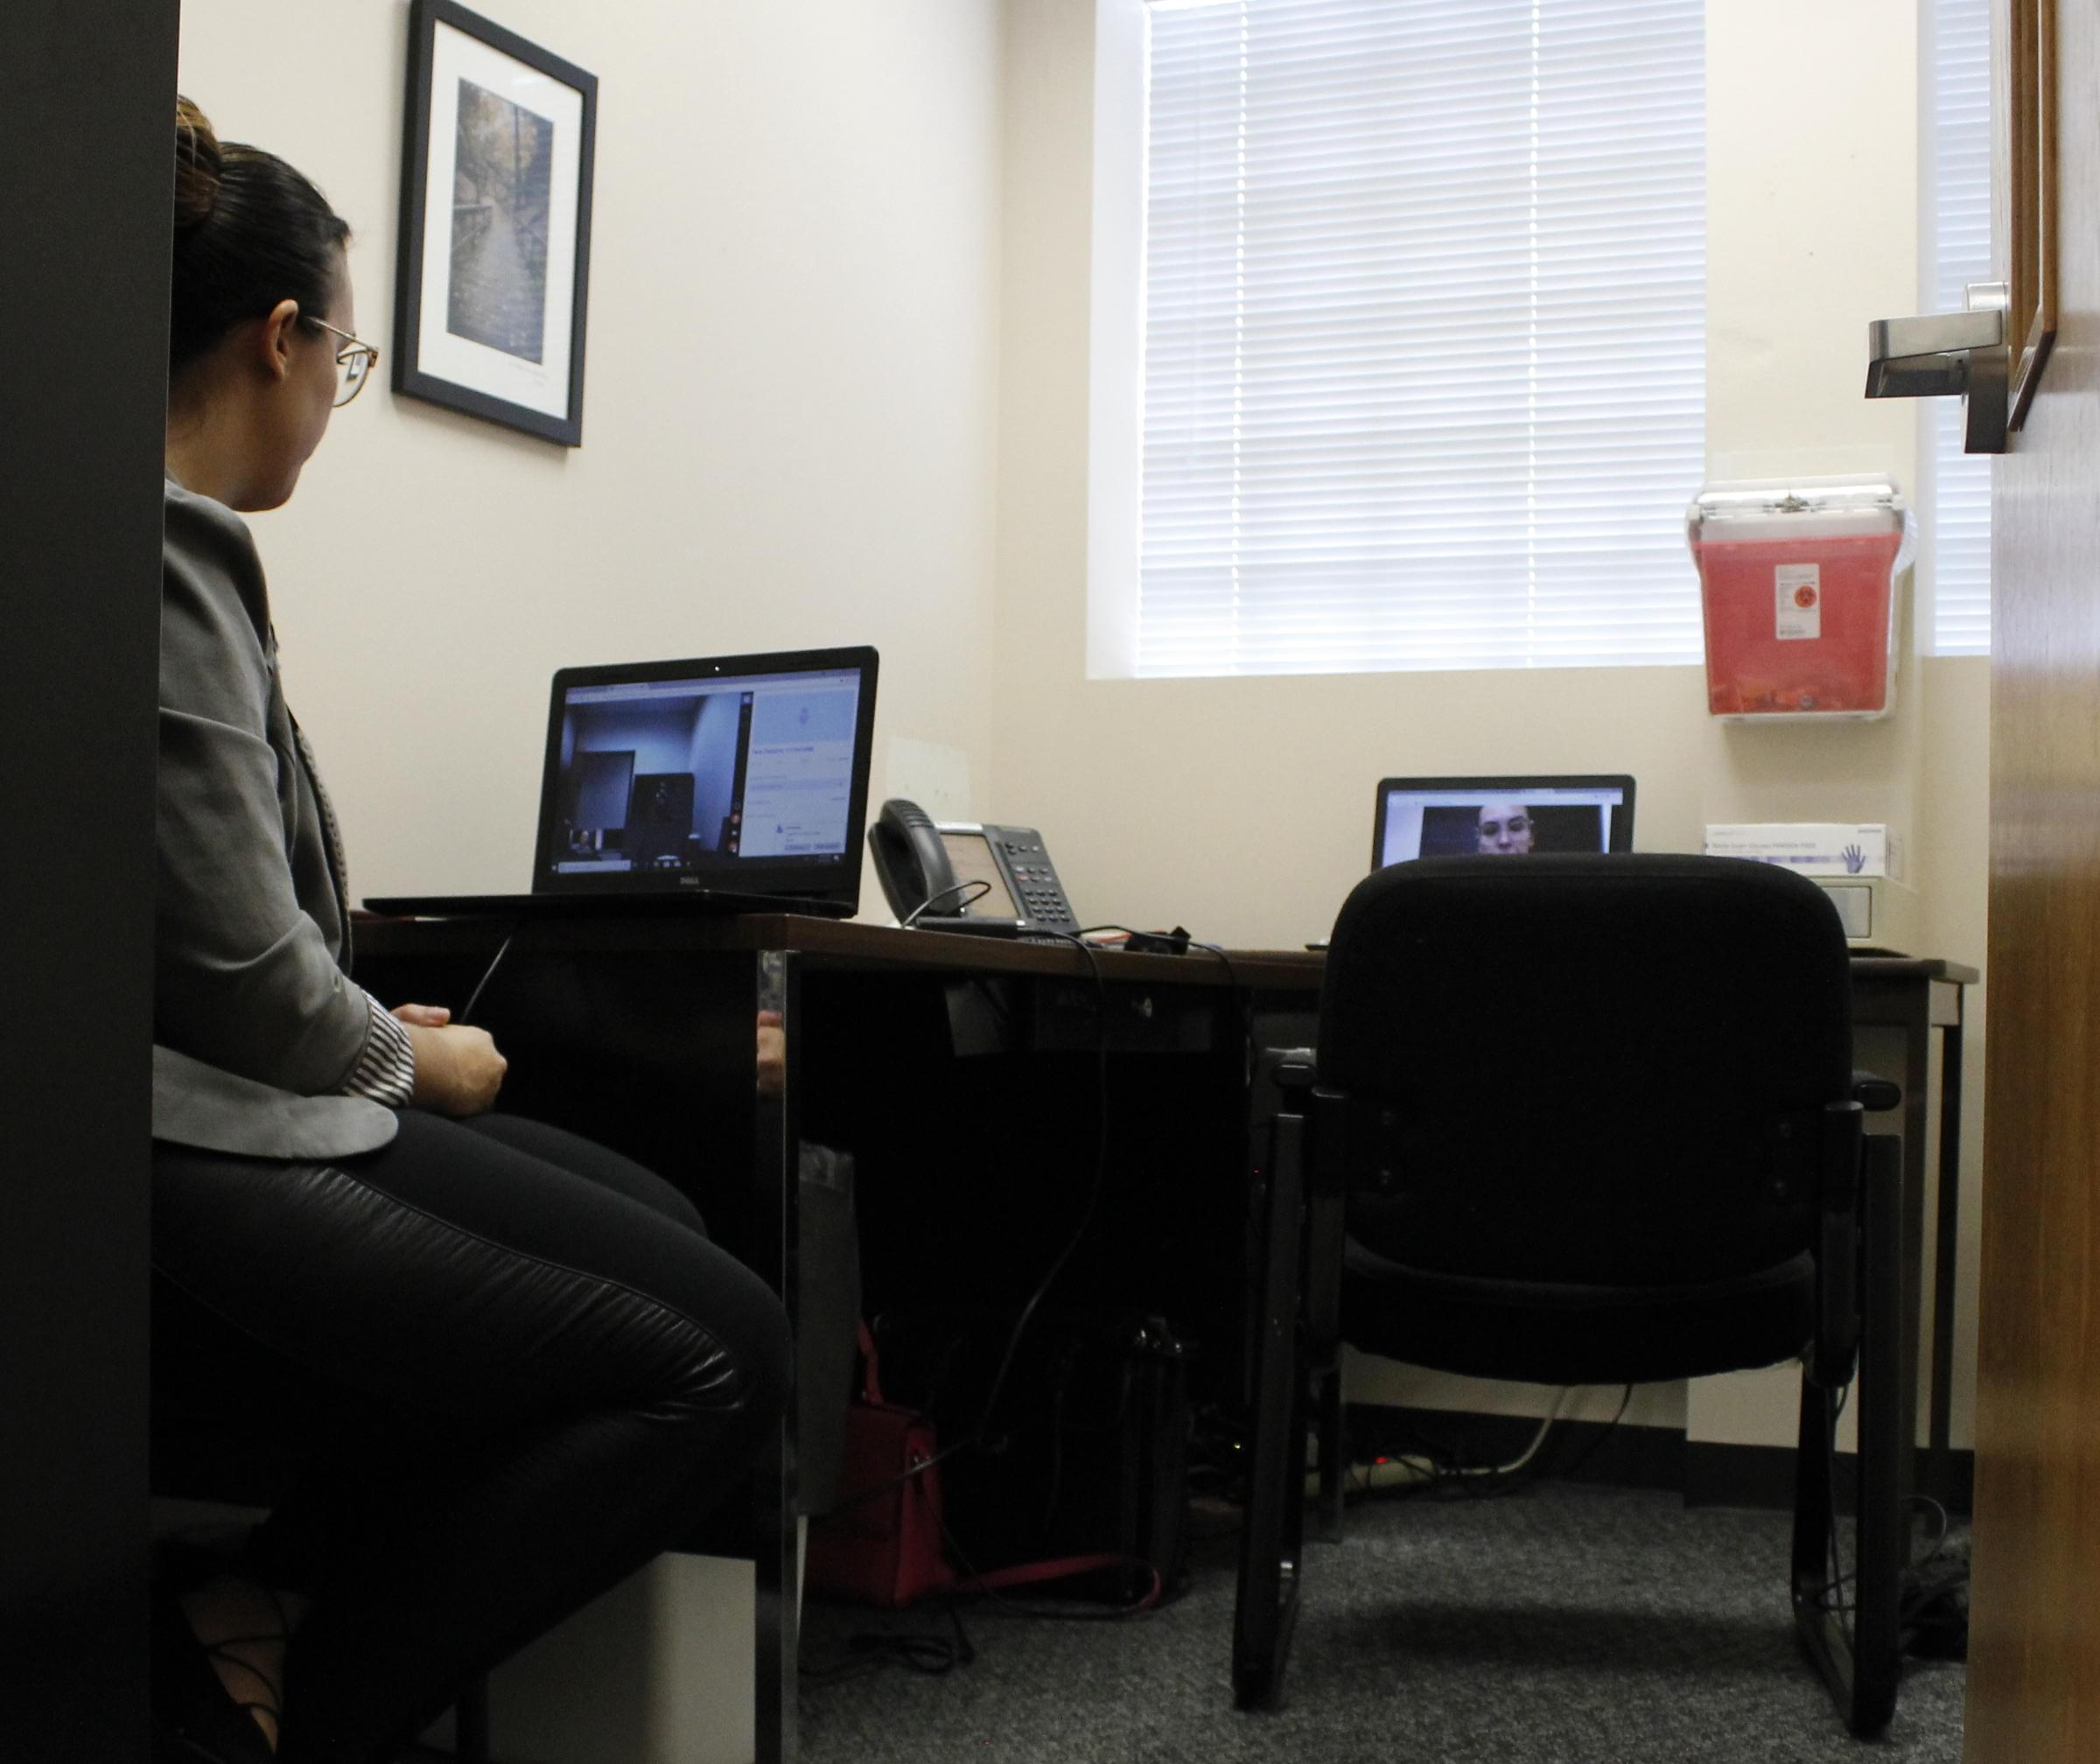 Telemedicine abortion technology has evolved since it started 10 years ago, moving to a secure online system.